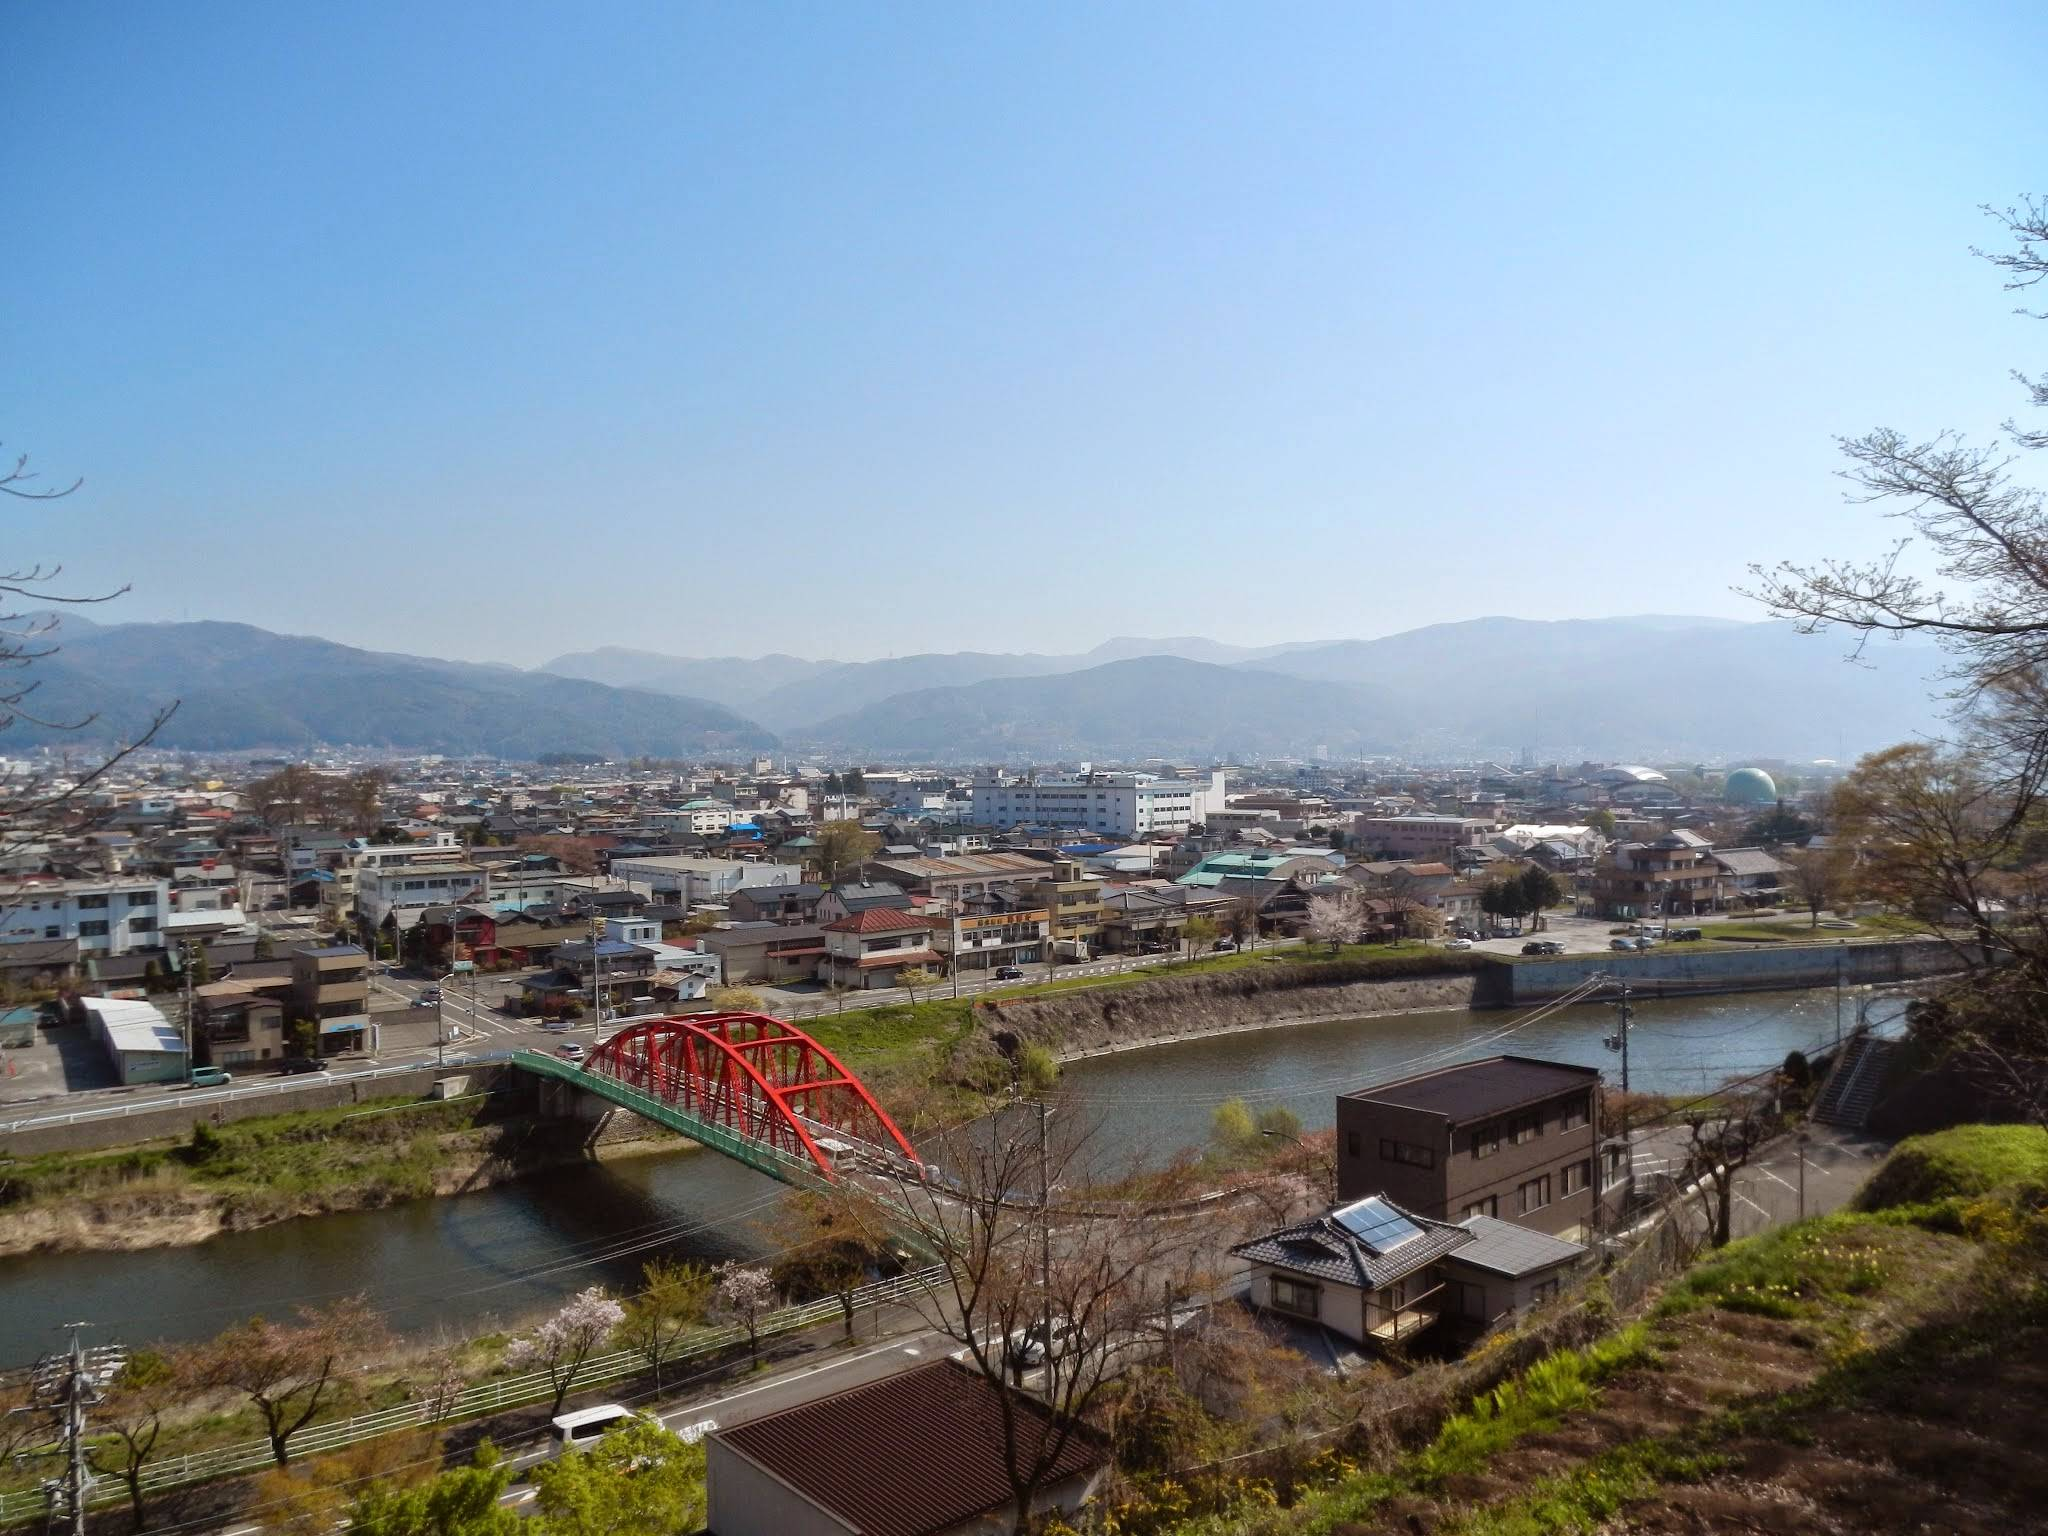 The city of Okaya in Nagano Prefecture was set to host around 10 members of Canada's table tennis team in July, but the Canadian side pulled out in January as a result of the coronavirus pandemic. | KIWA DOKOKANO / CC BY-SA 3.0